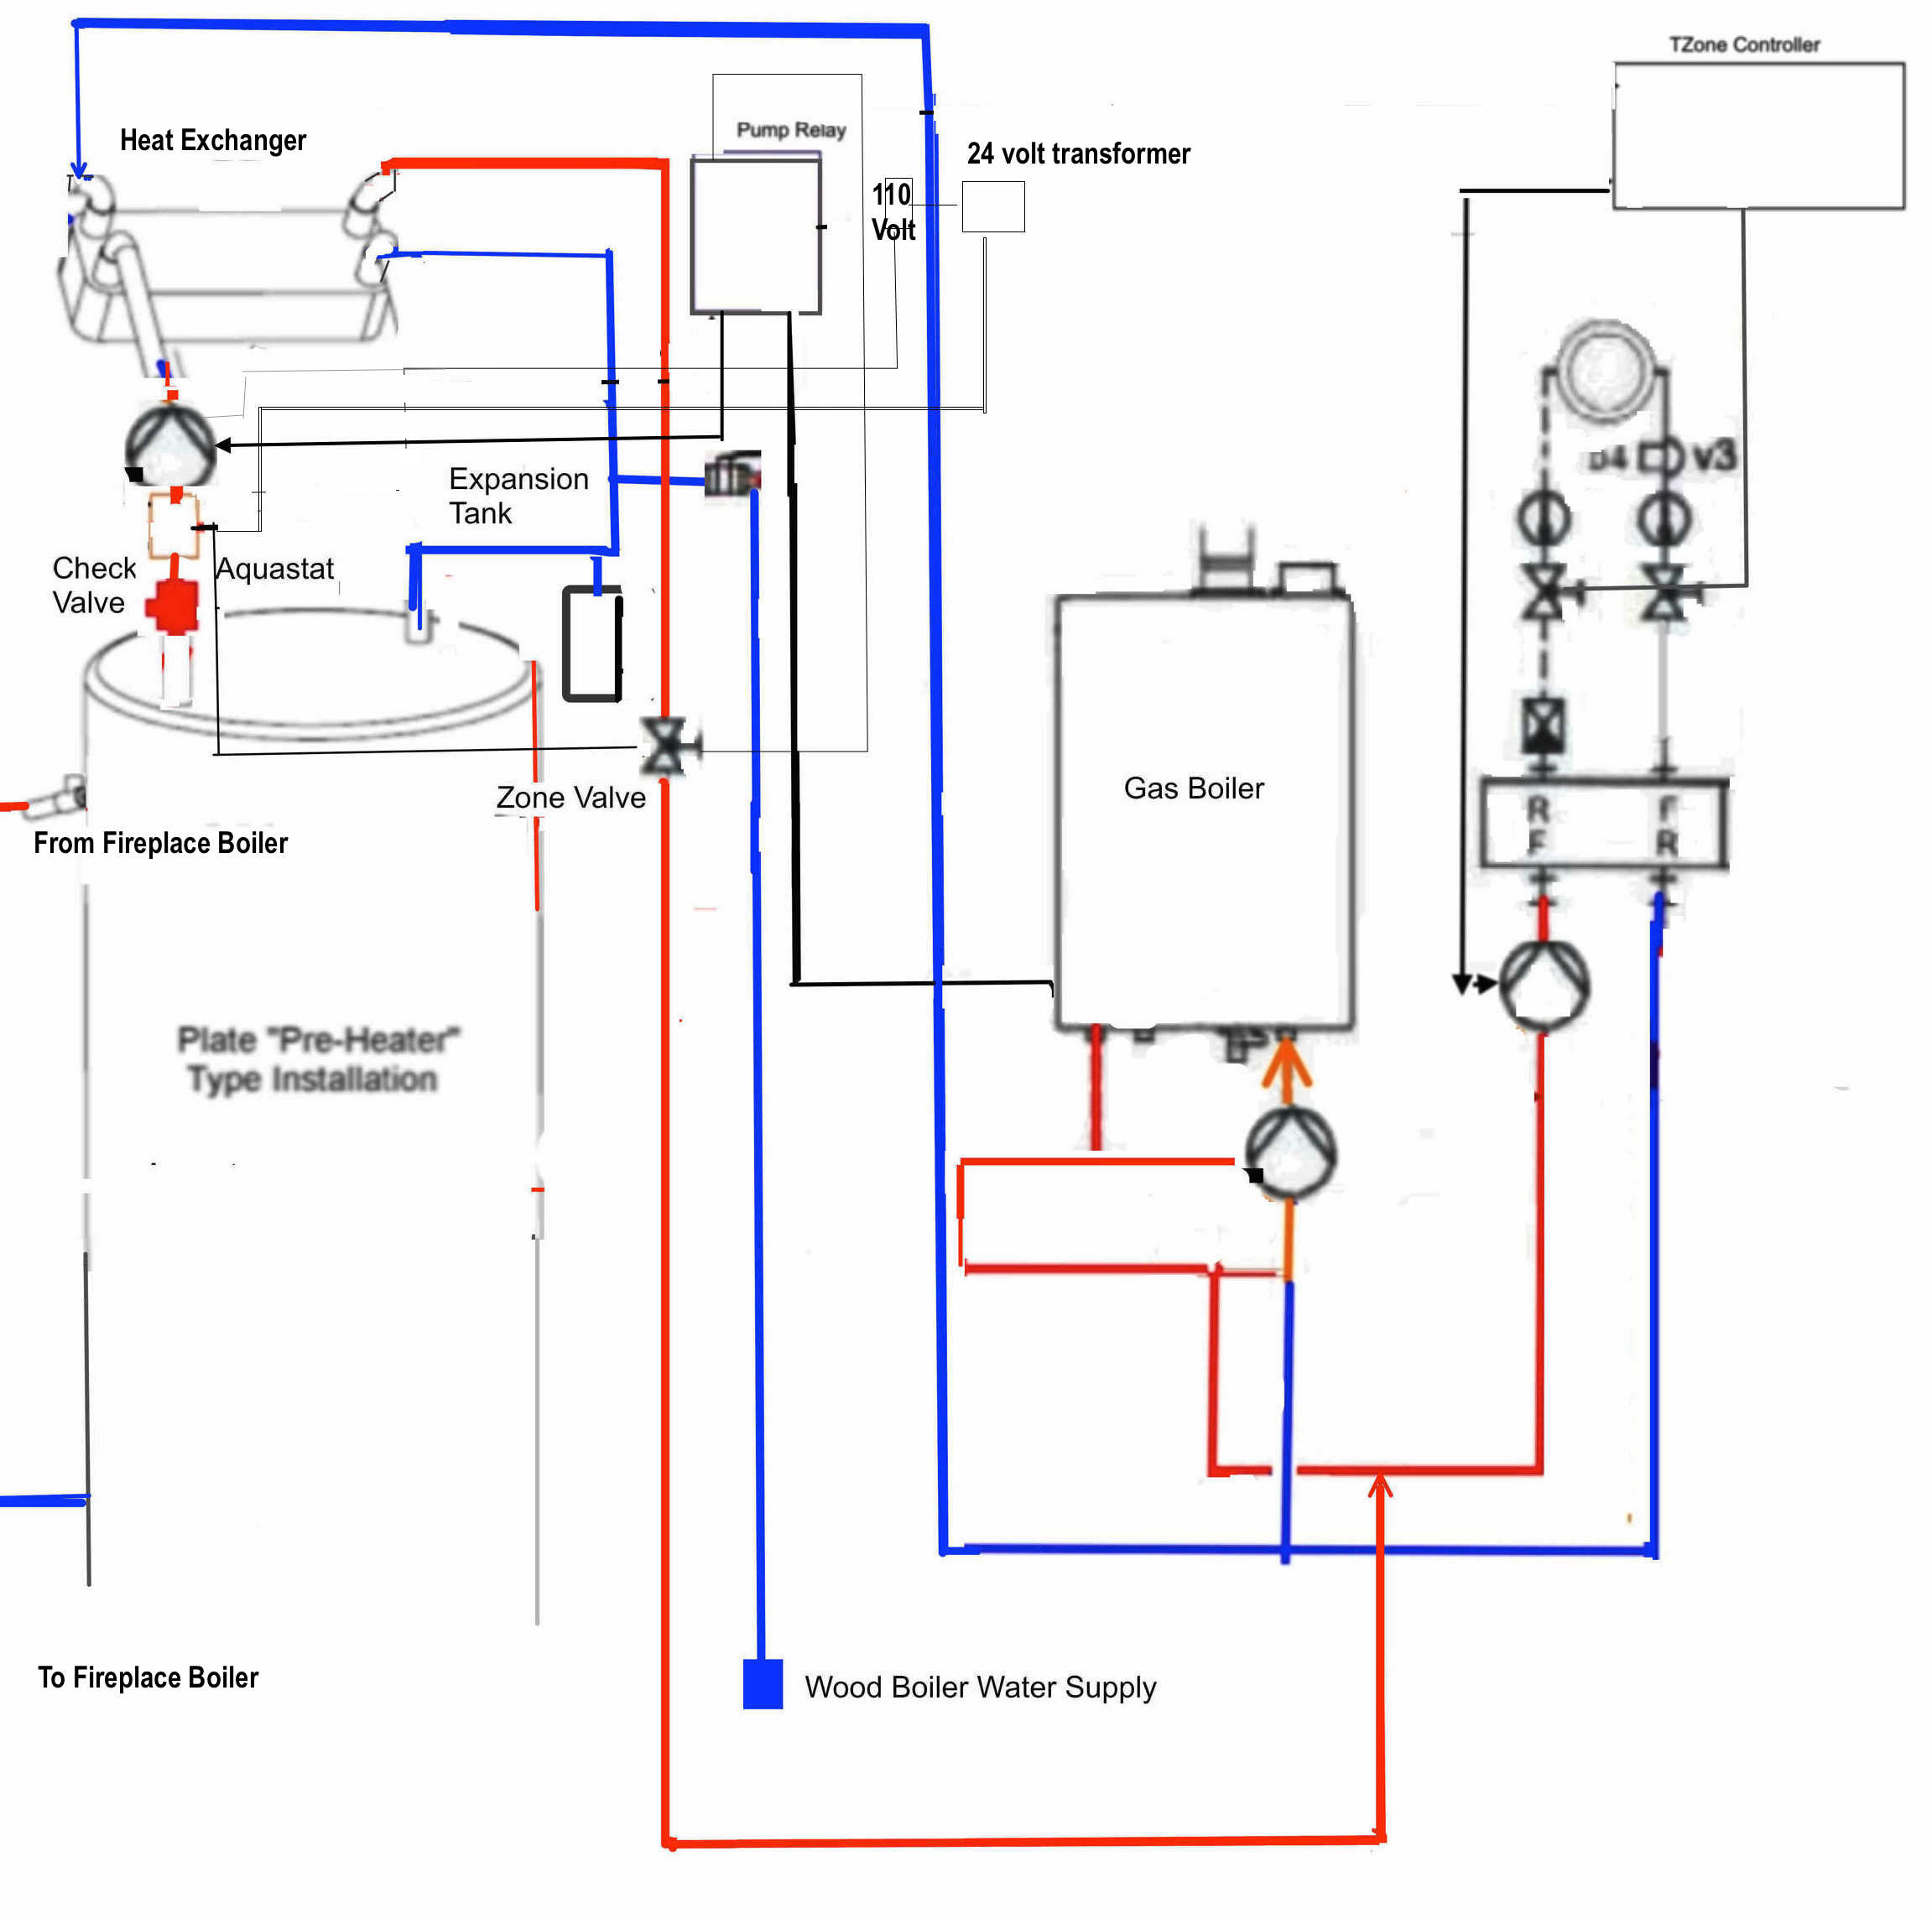 110 Volt Baseboard Heaters Wiring Diagram Wiring Plan For Fireplace Boiler Twinsprings Research